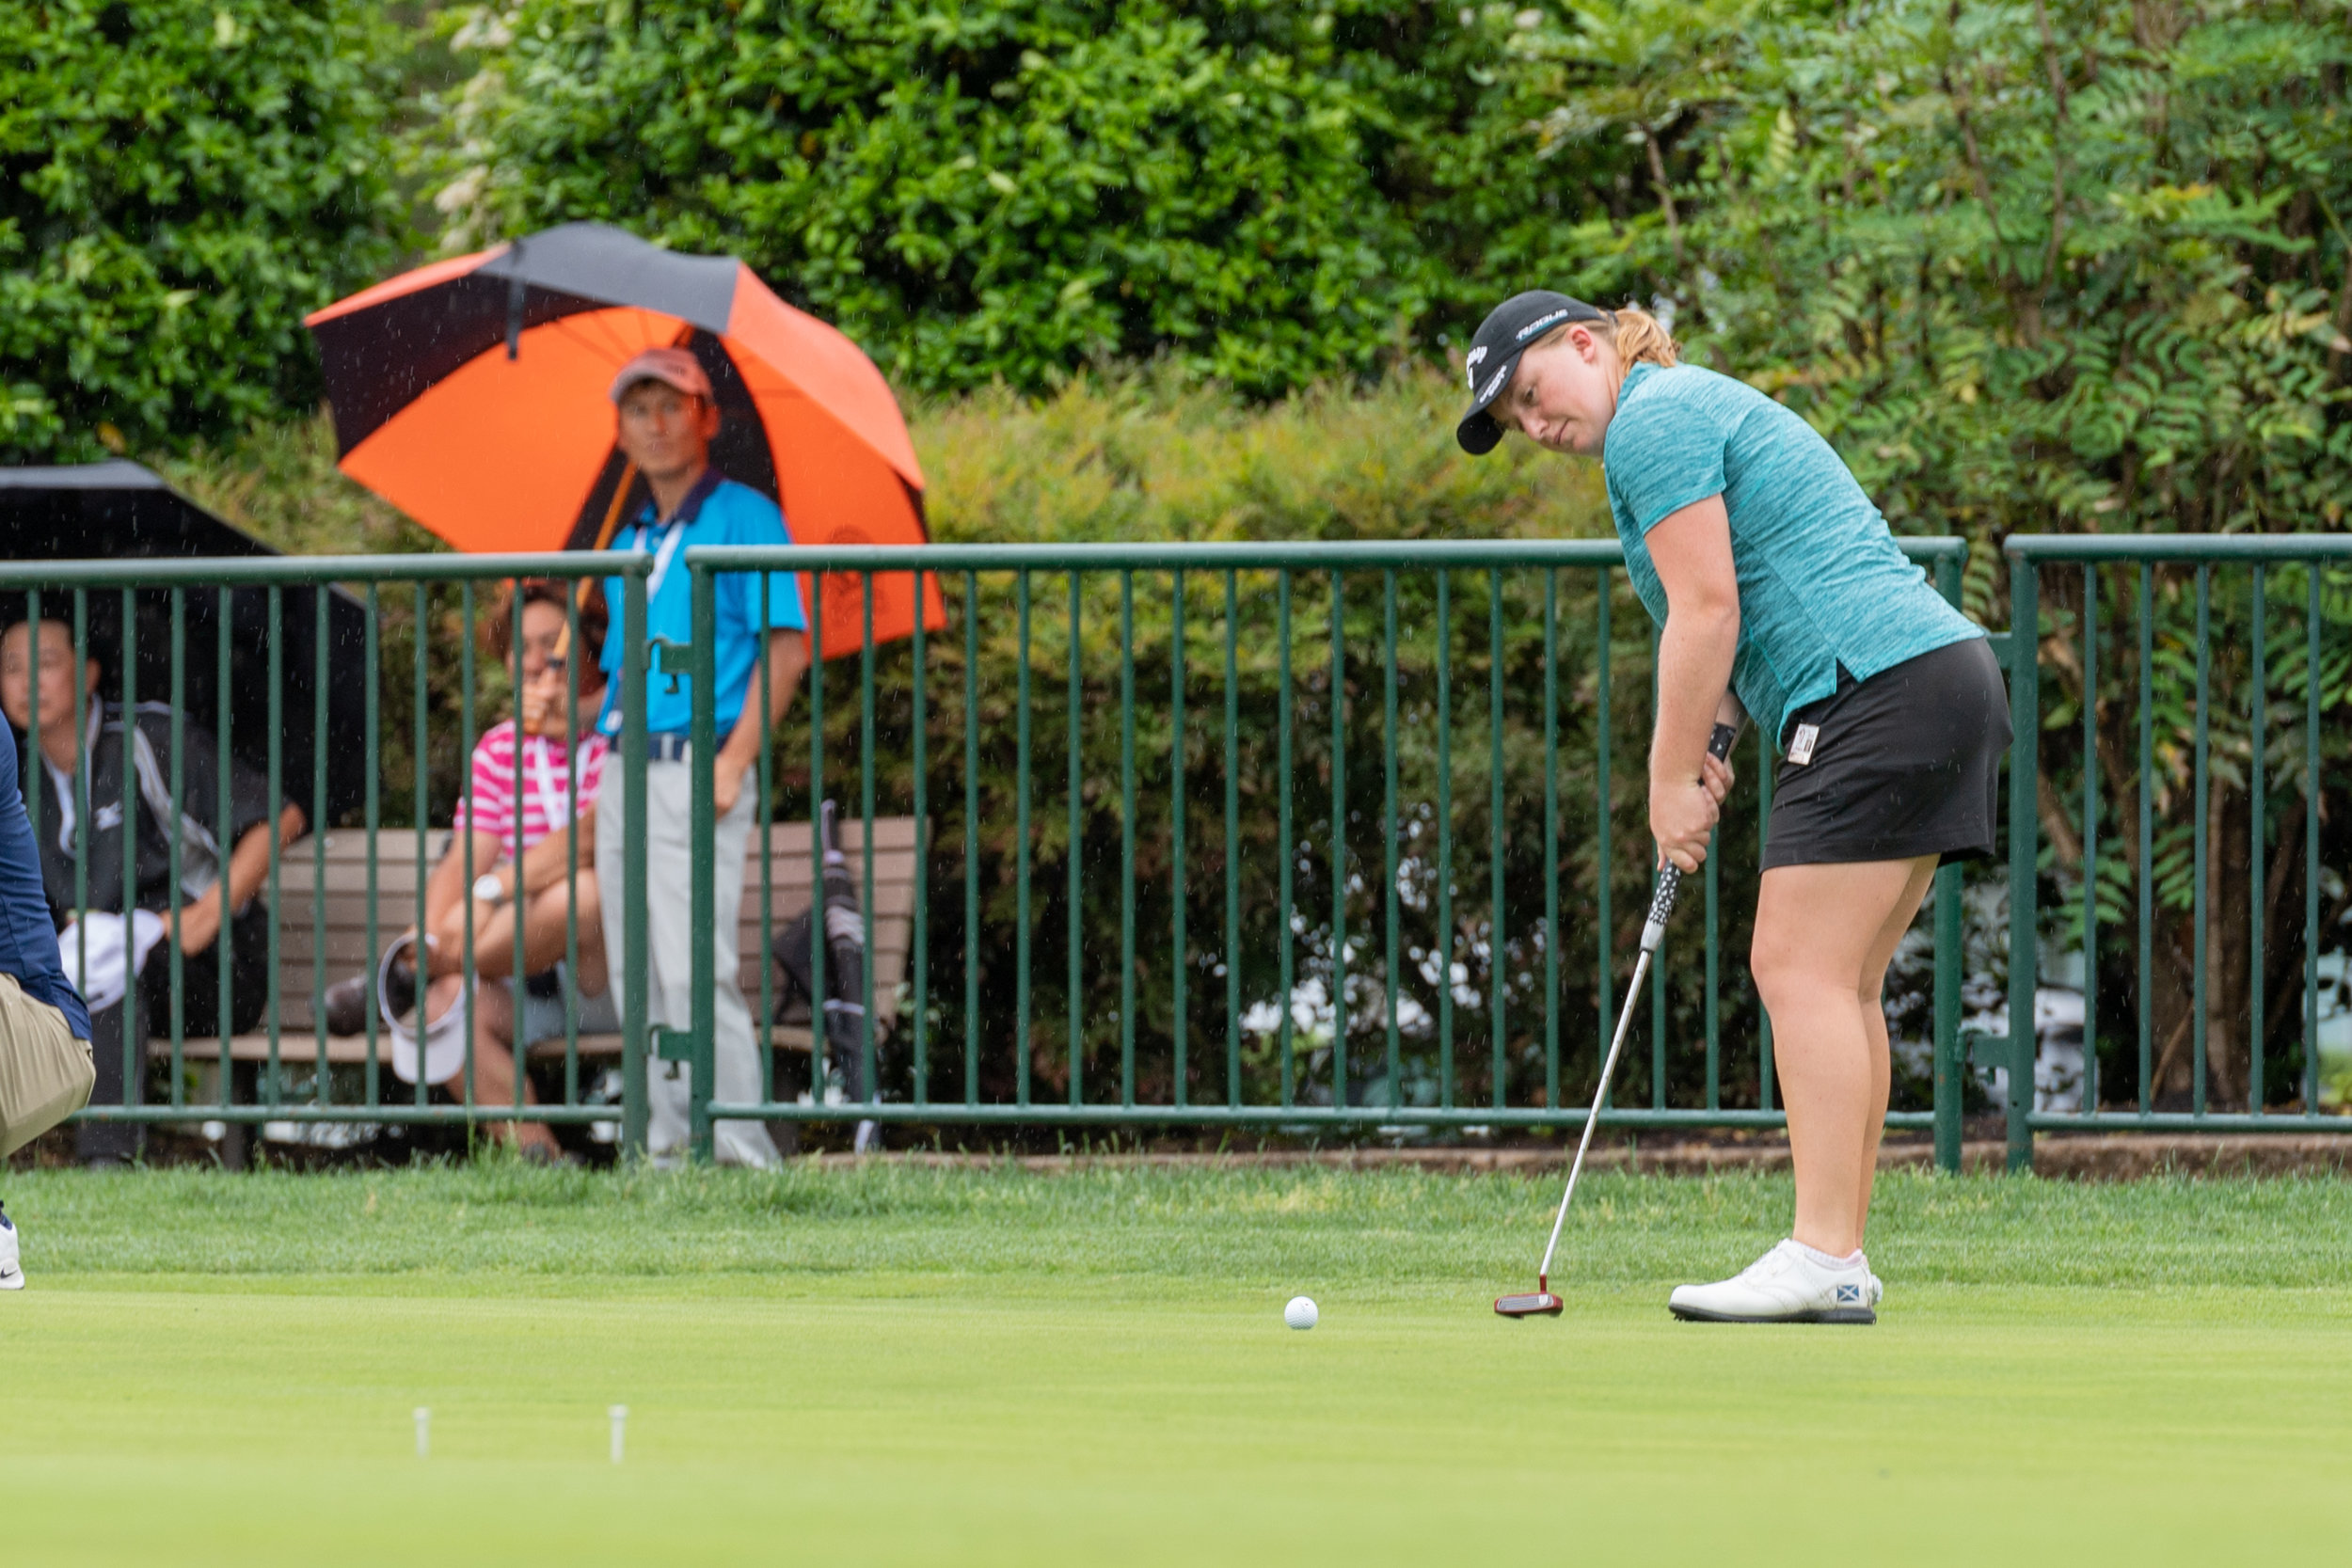 Gemma Dryburgh practices in the rain on Saturday, May 19, 2018 game at Kingsmill Resort . Play was suspended Friday night due to weather conditions and is expected to continue Sunday, May 20, 2018.